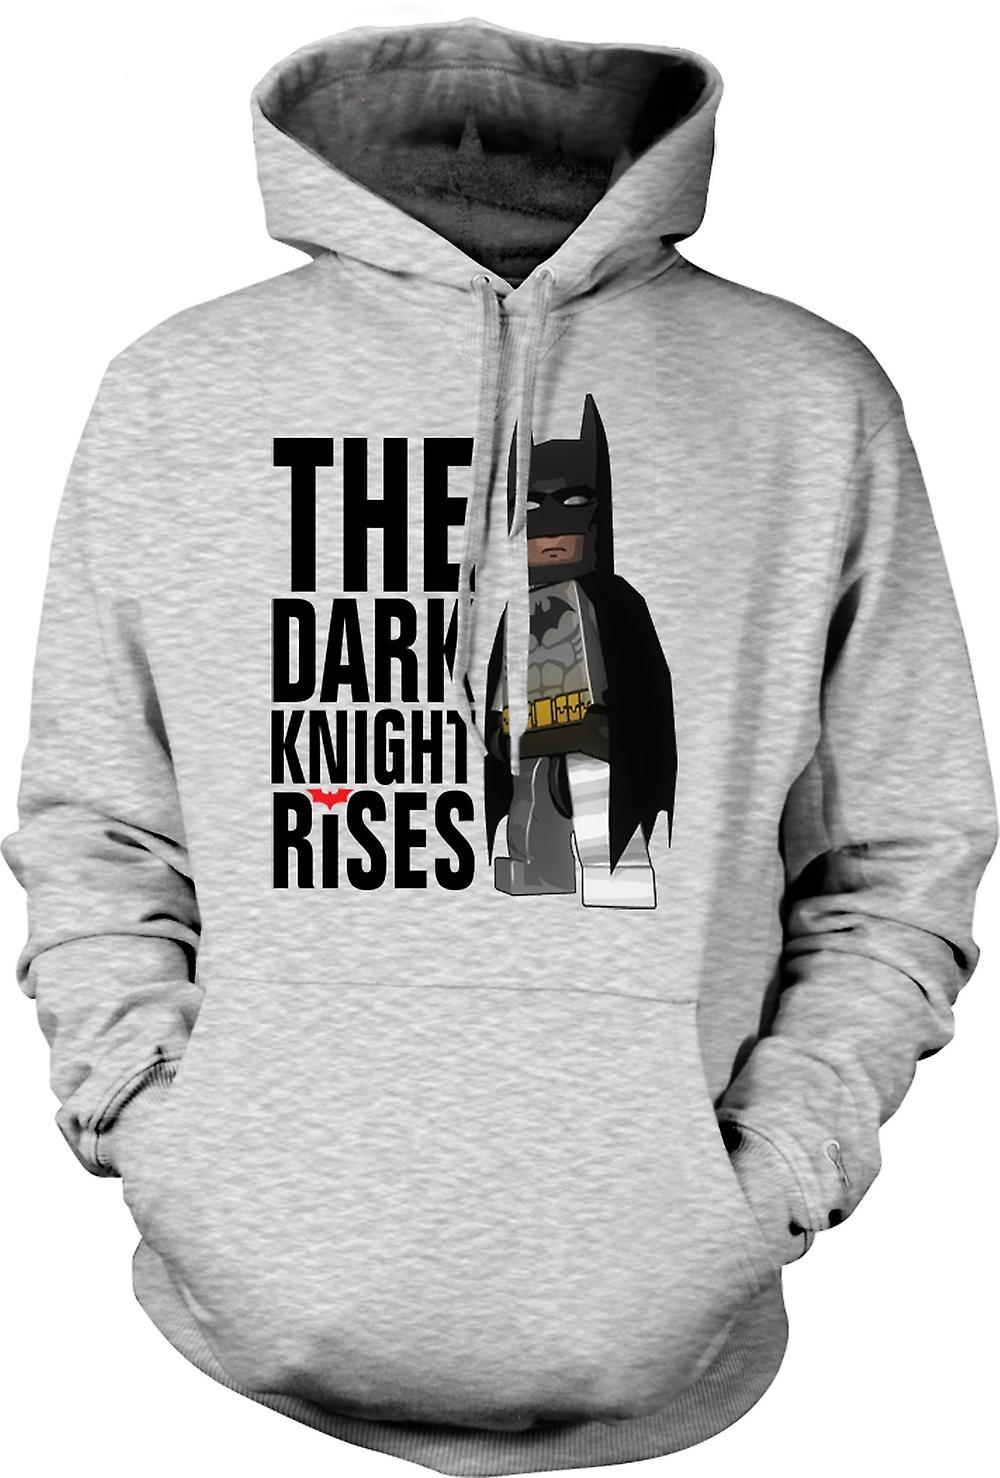 Mens-Hoodie - Batman Lego Super Hero - Dark Knight Rises